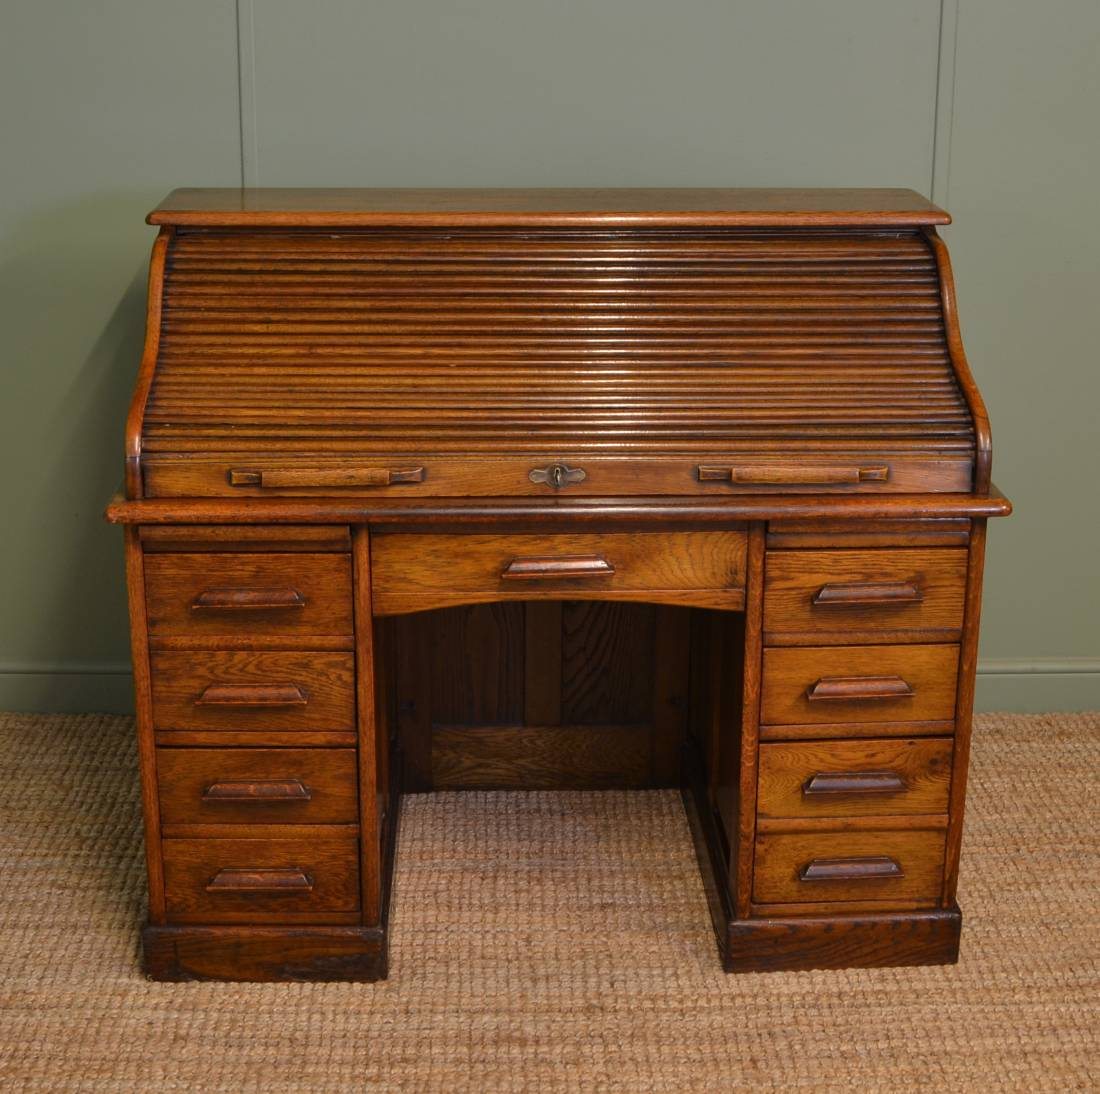 S Shaped Edwardian Solid Oak Antique Roll Top Desk.